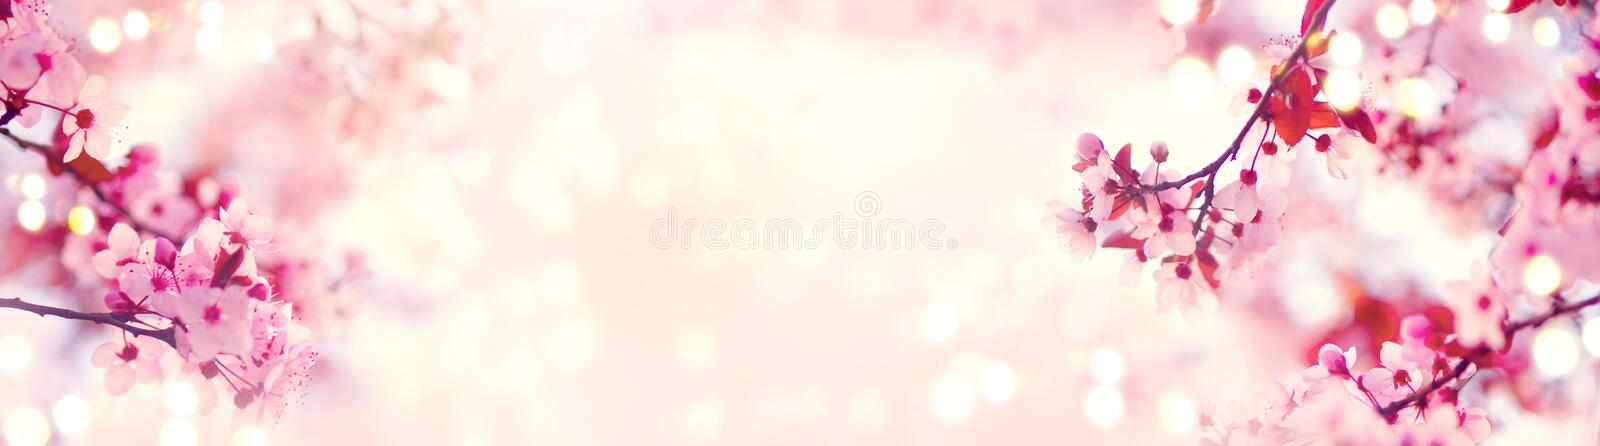 Spring border or background art with pink blossom. Beautiful nature scene with blooming tree. And sun flare stock photo